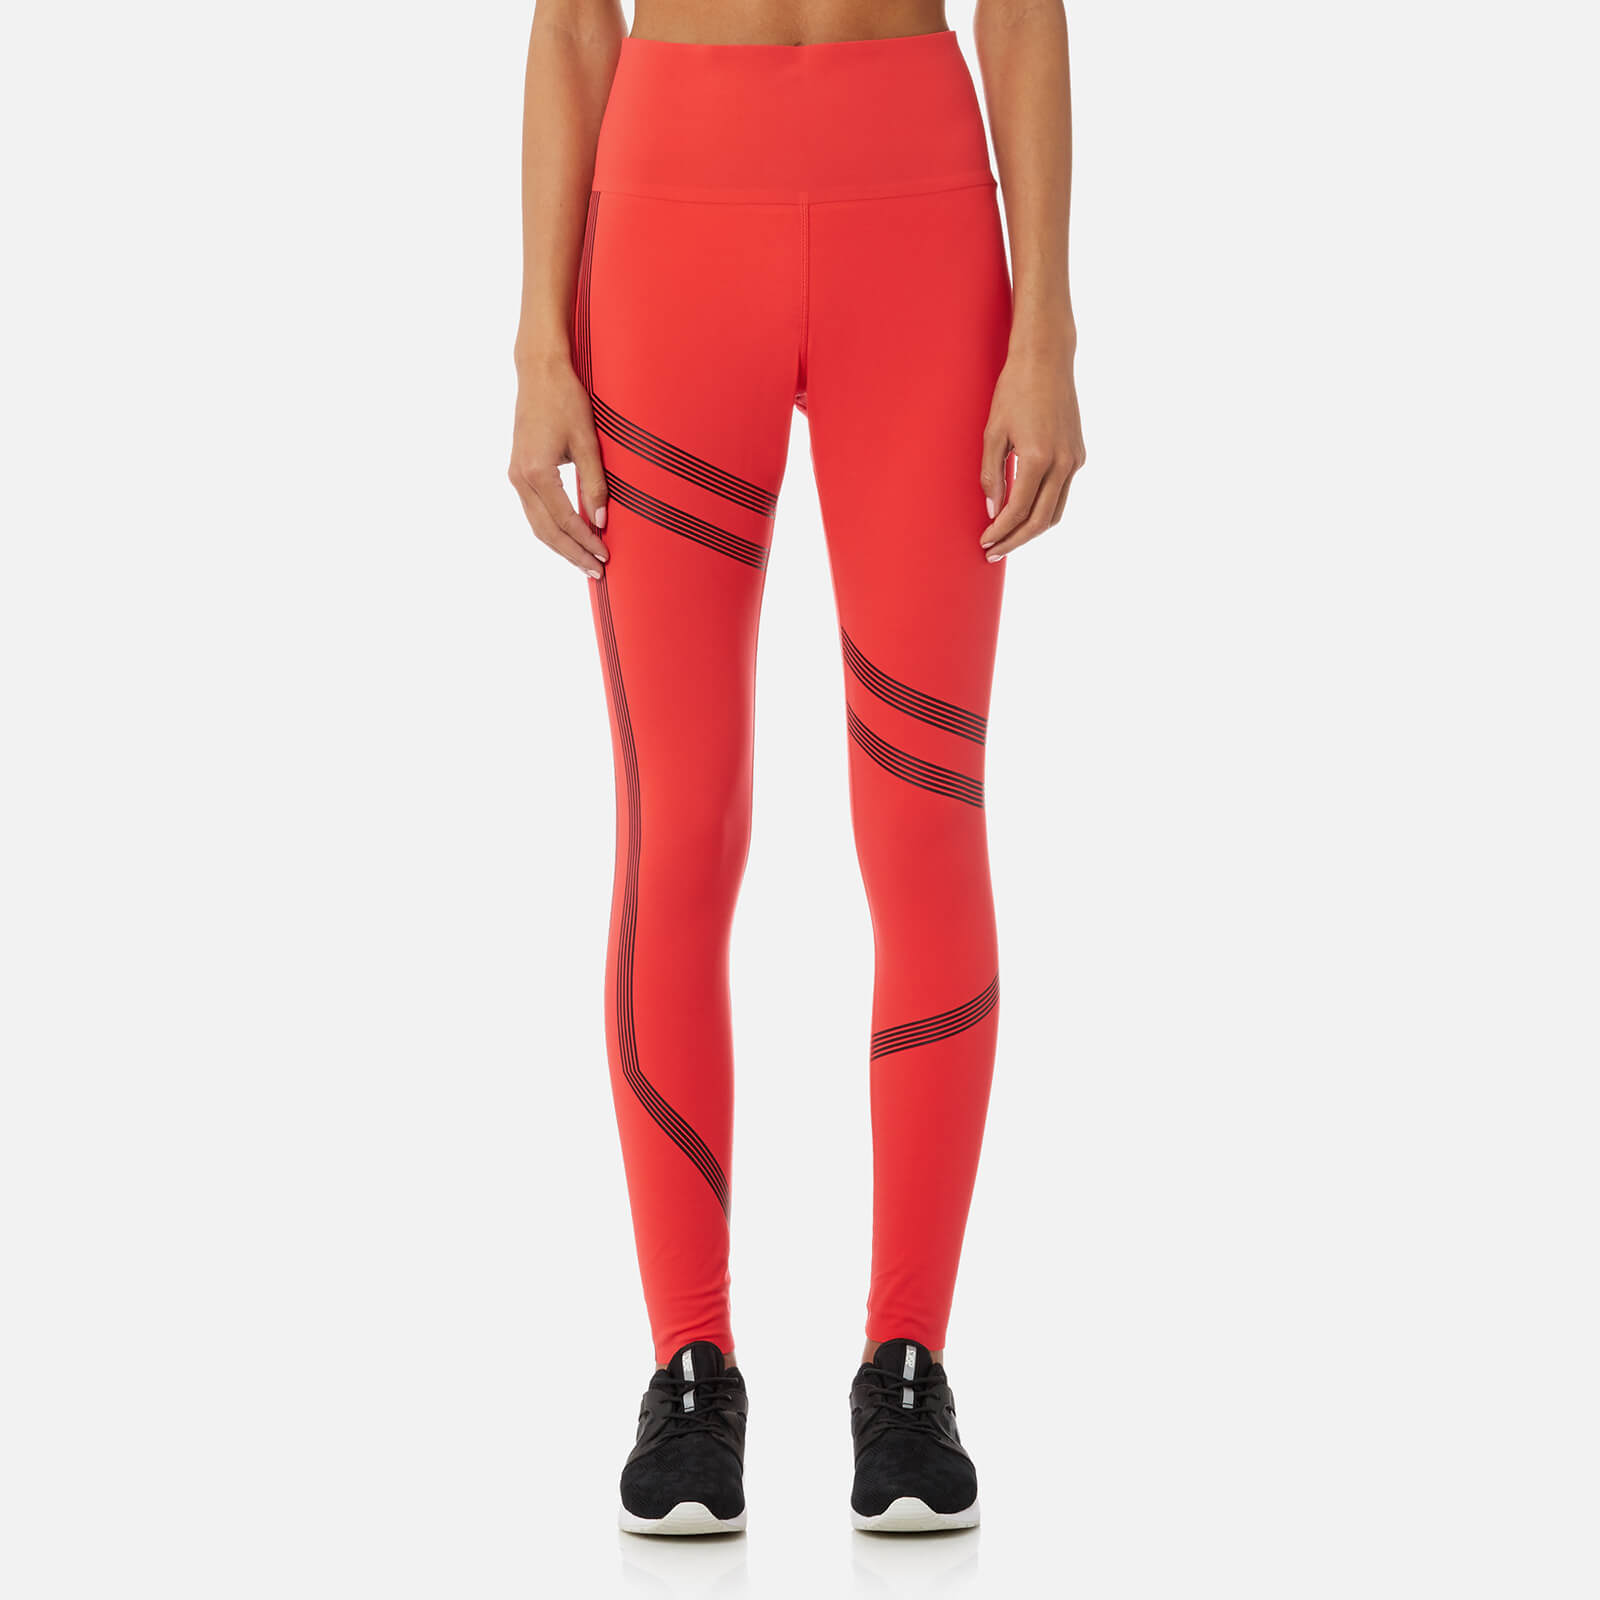 d0ba84854a68c5 Reebok Women's Linear High Rise Tights - Glow Red Womens Clothing |  TheHut.com